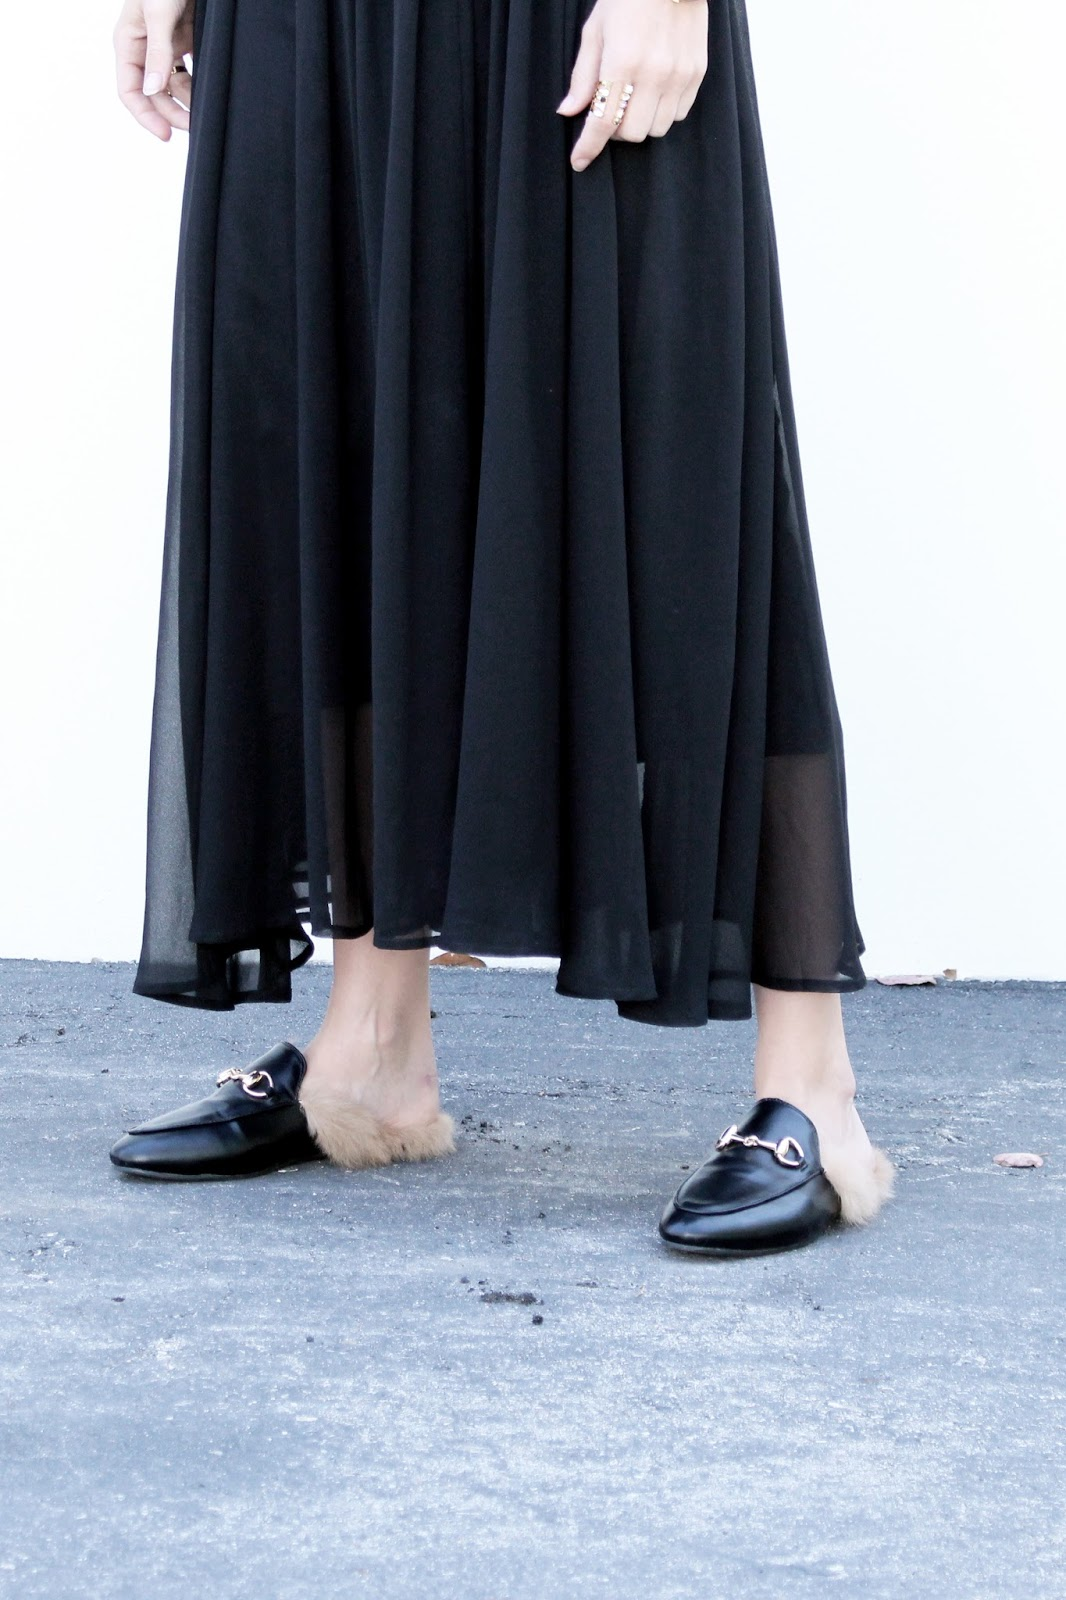 loafers and dress